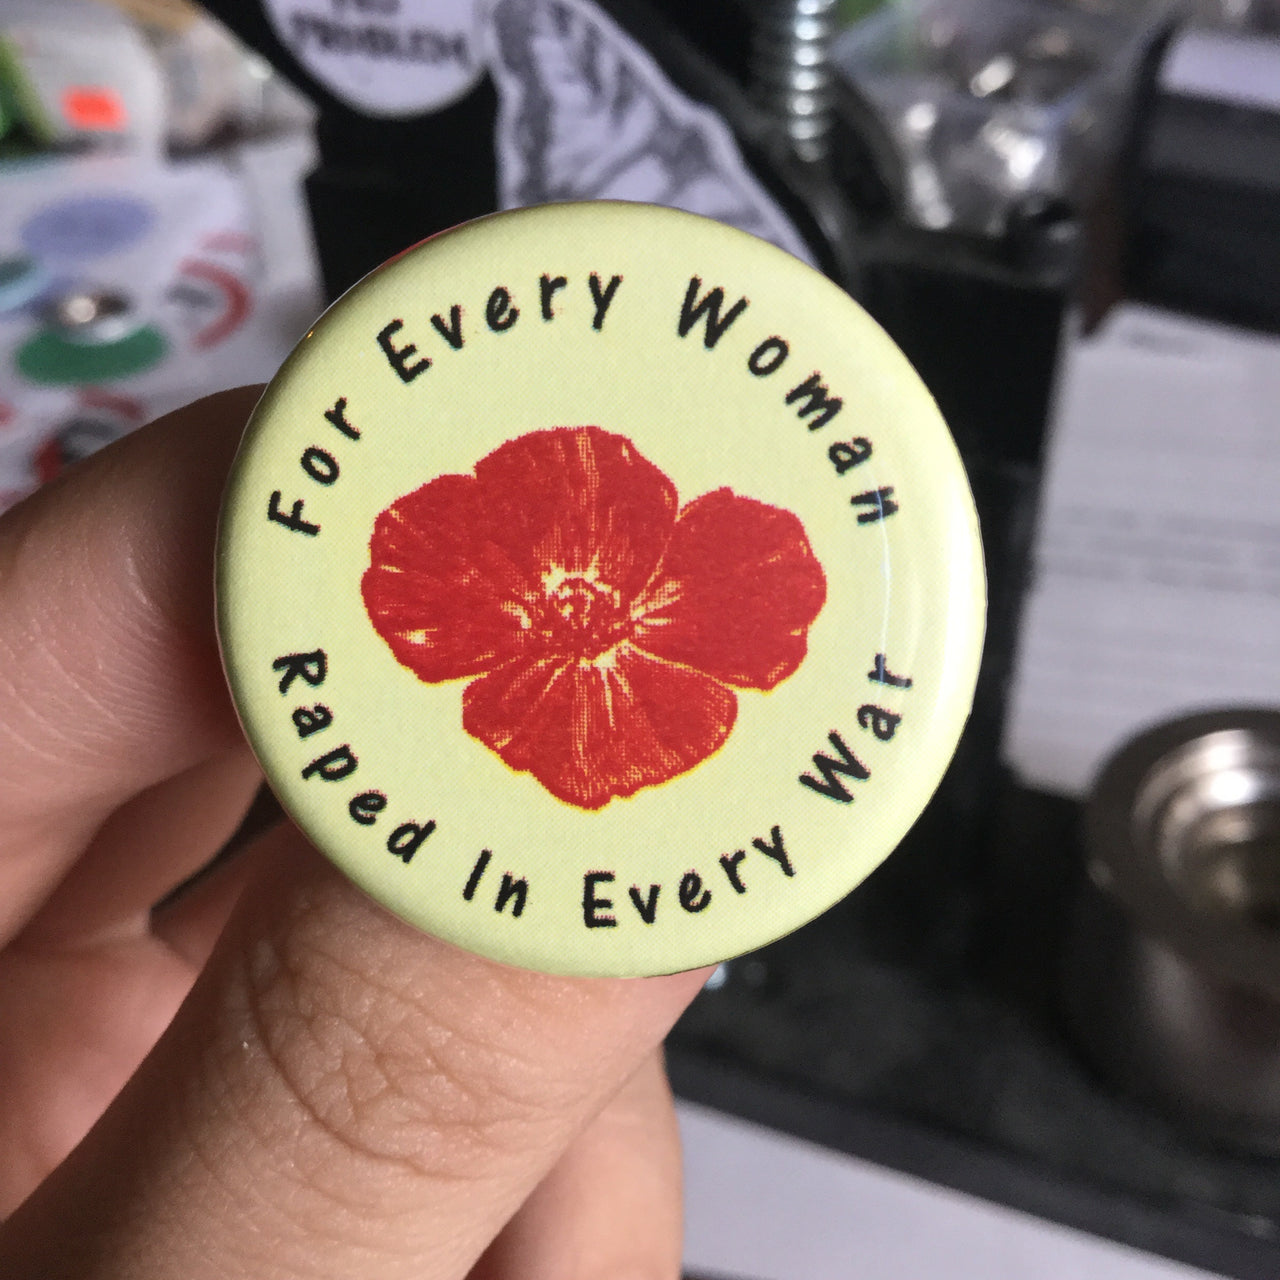 For every woman raped in every war - Radical Buttons